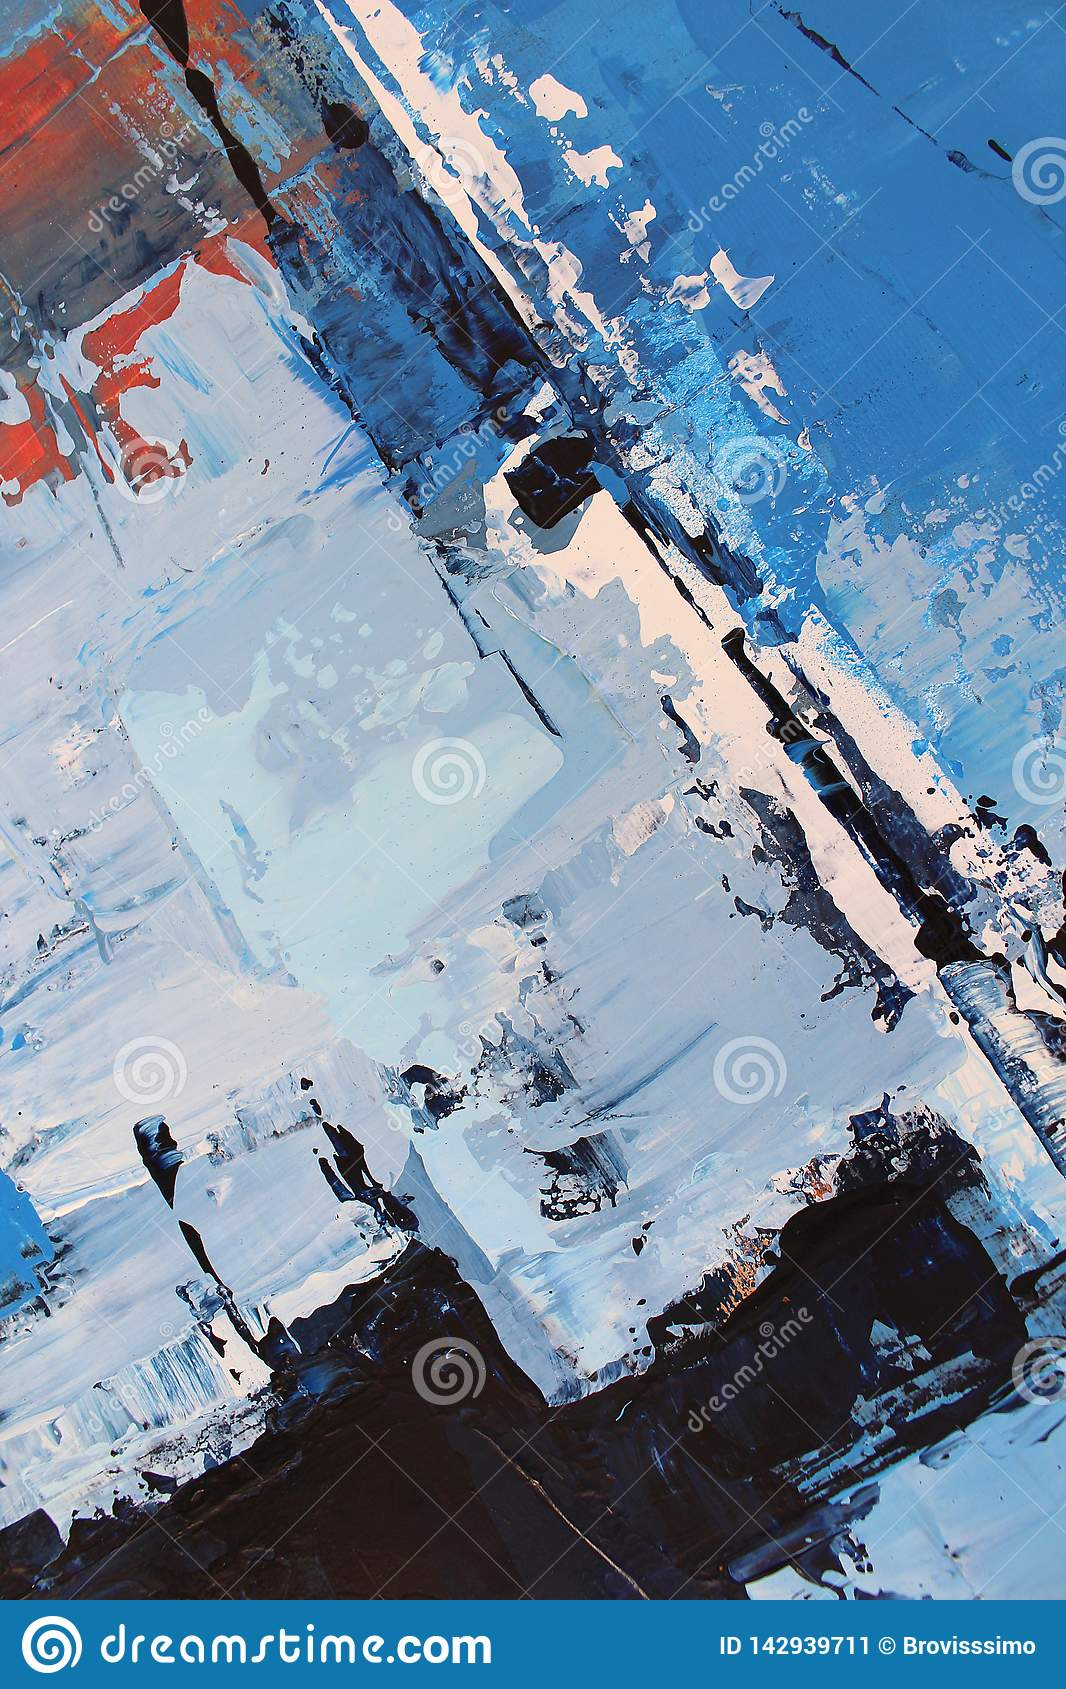 Blue bright colors on canvas.Oil painting. Abstract art background. Oil painting on canvas. Color texture. Fragment of artwork.